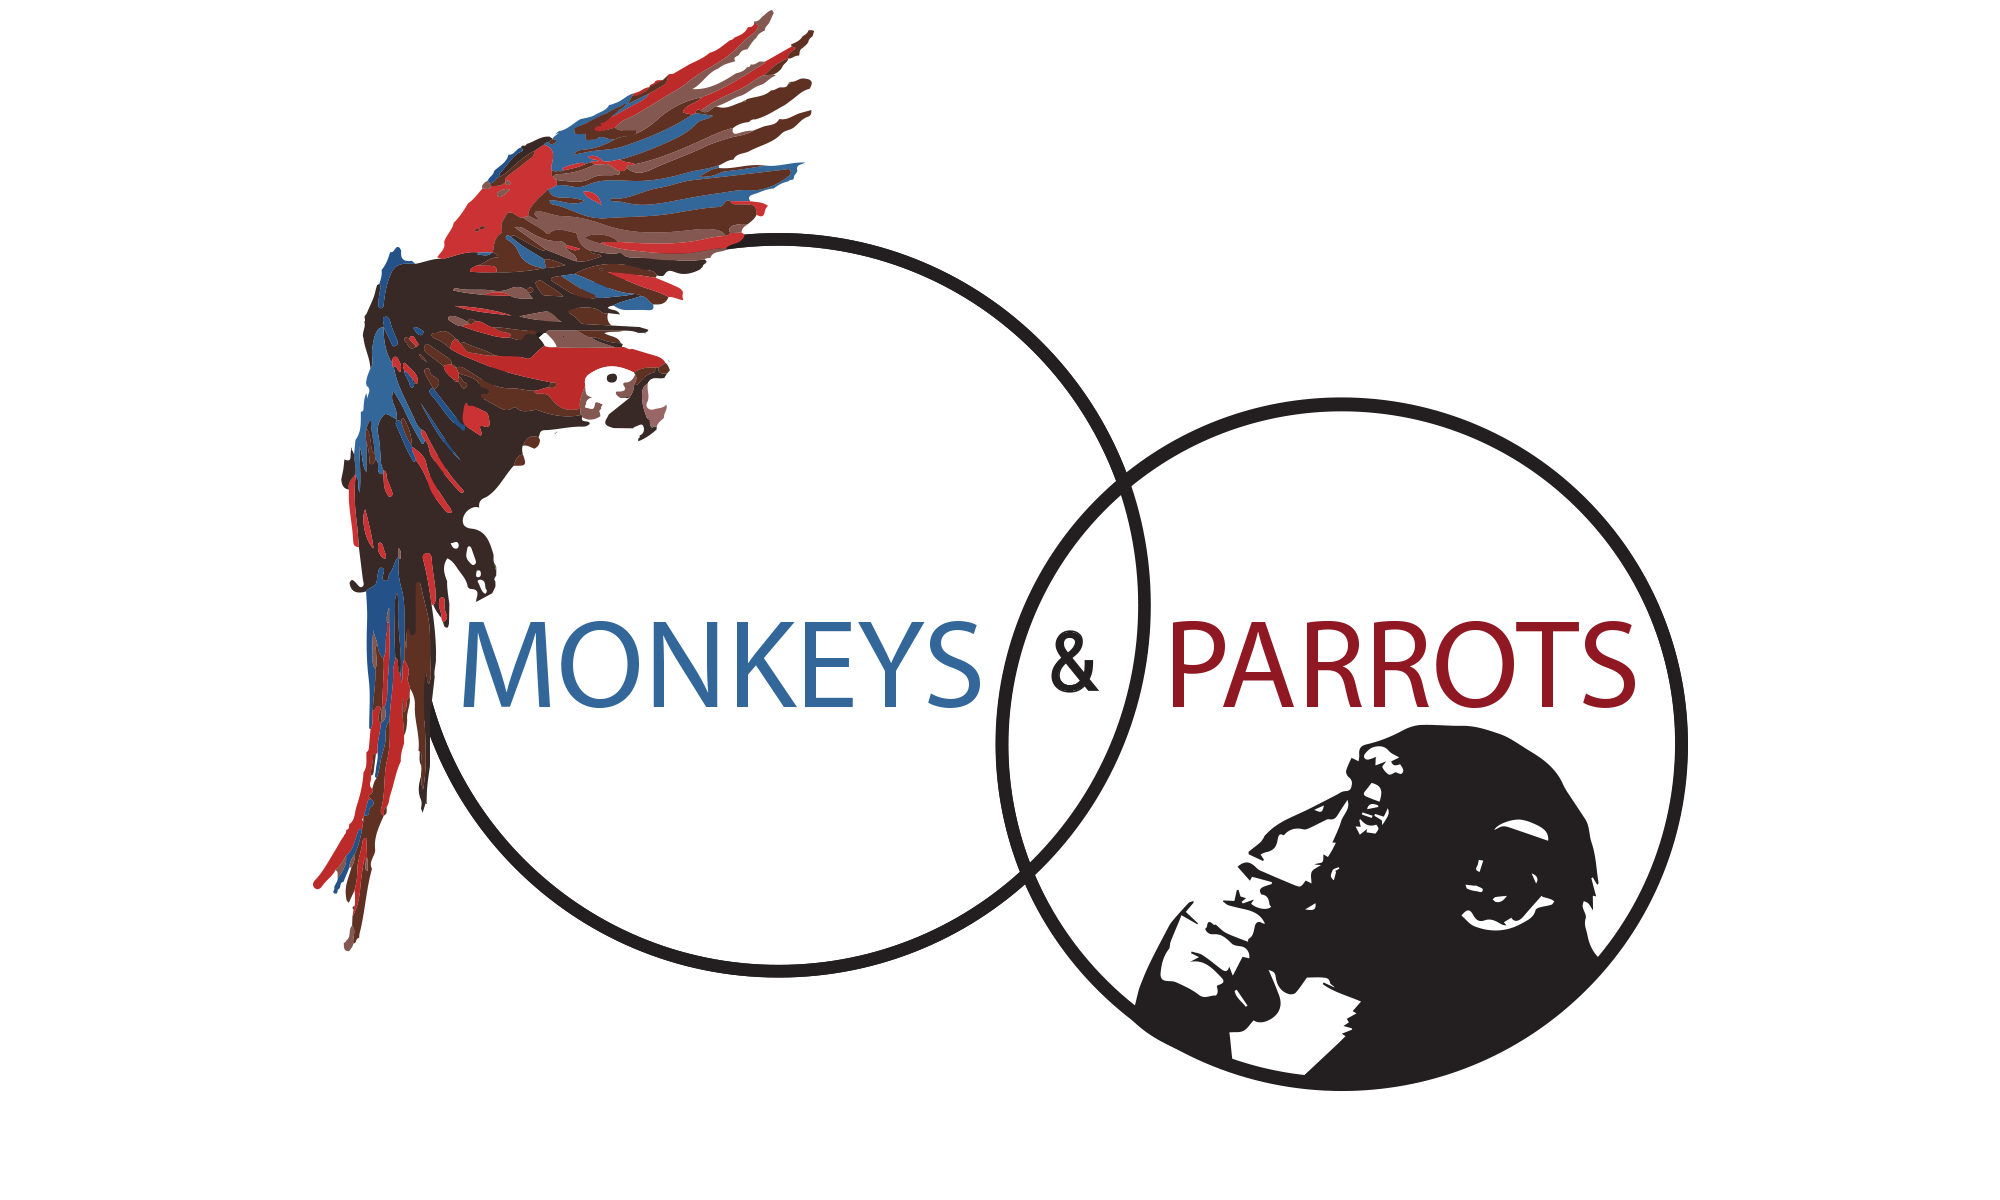 Monkeys and Parrots